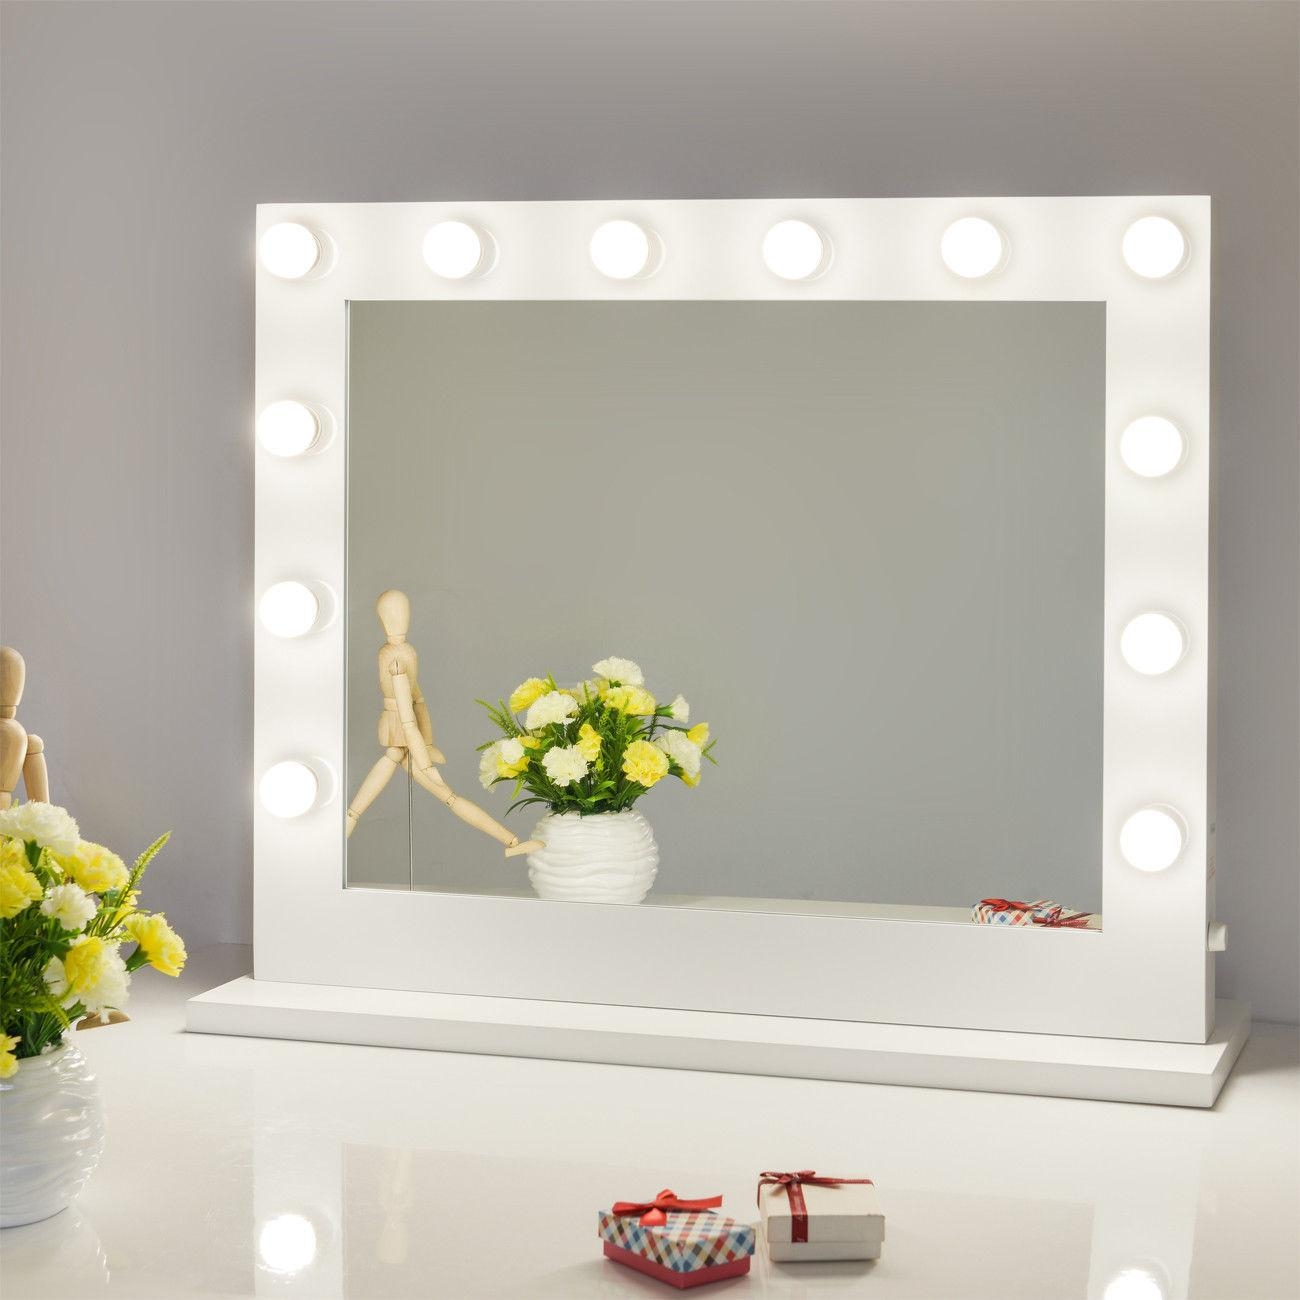 Chende White Hollywood Lighted Makeup Mirror | Ebay Pertaining To Lit Makeup Mirrors (View 3 of 20)